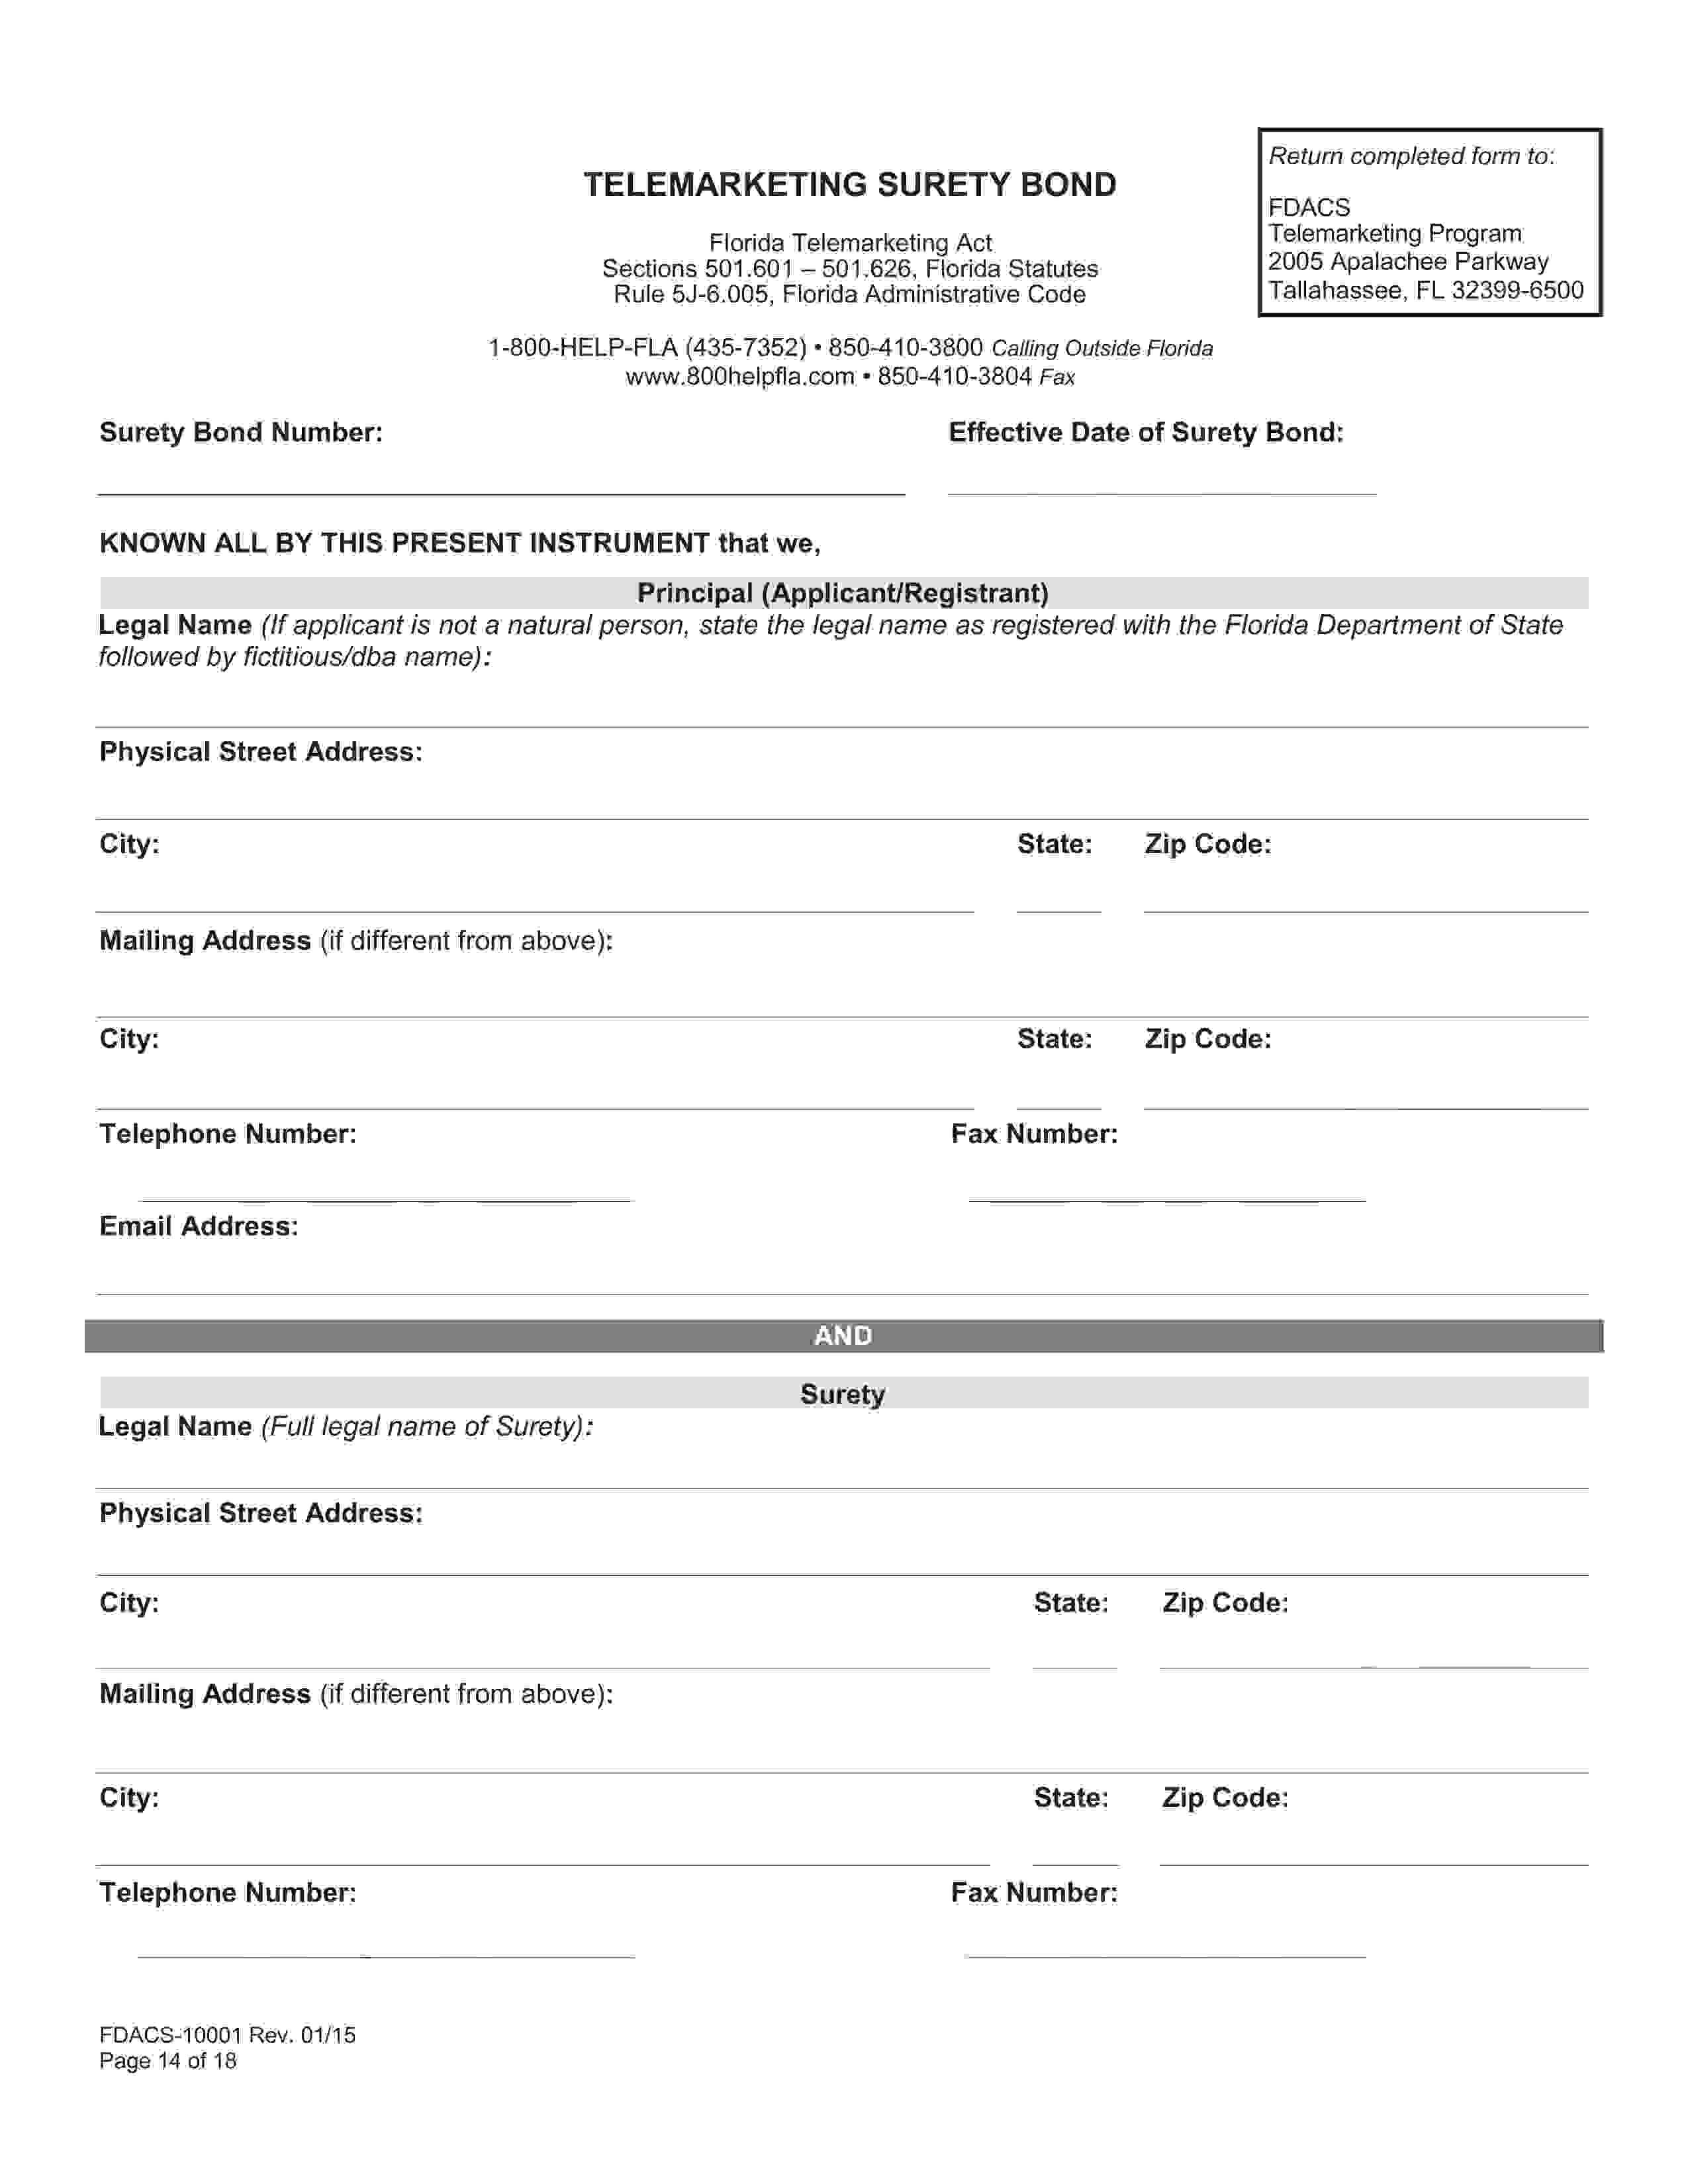 Department Of Agriculture And Consumer Services Telemarketing Bond sample image